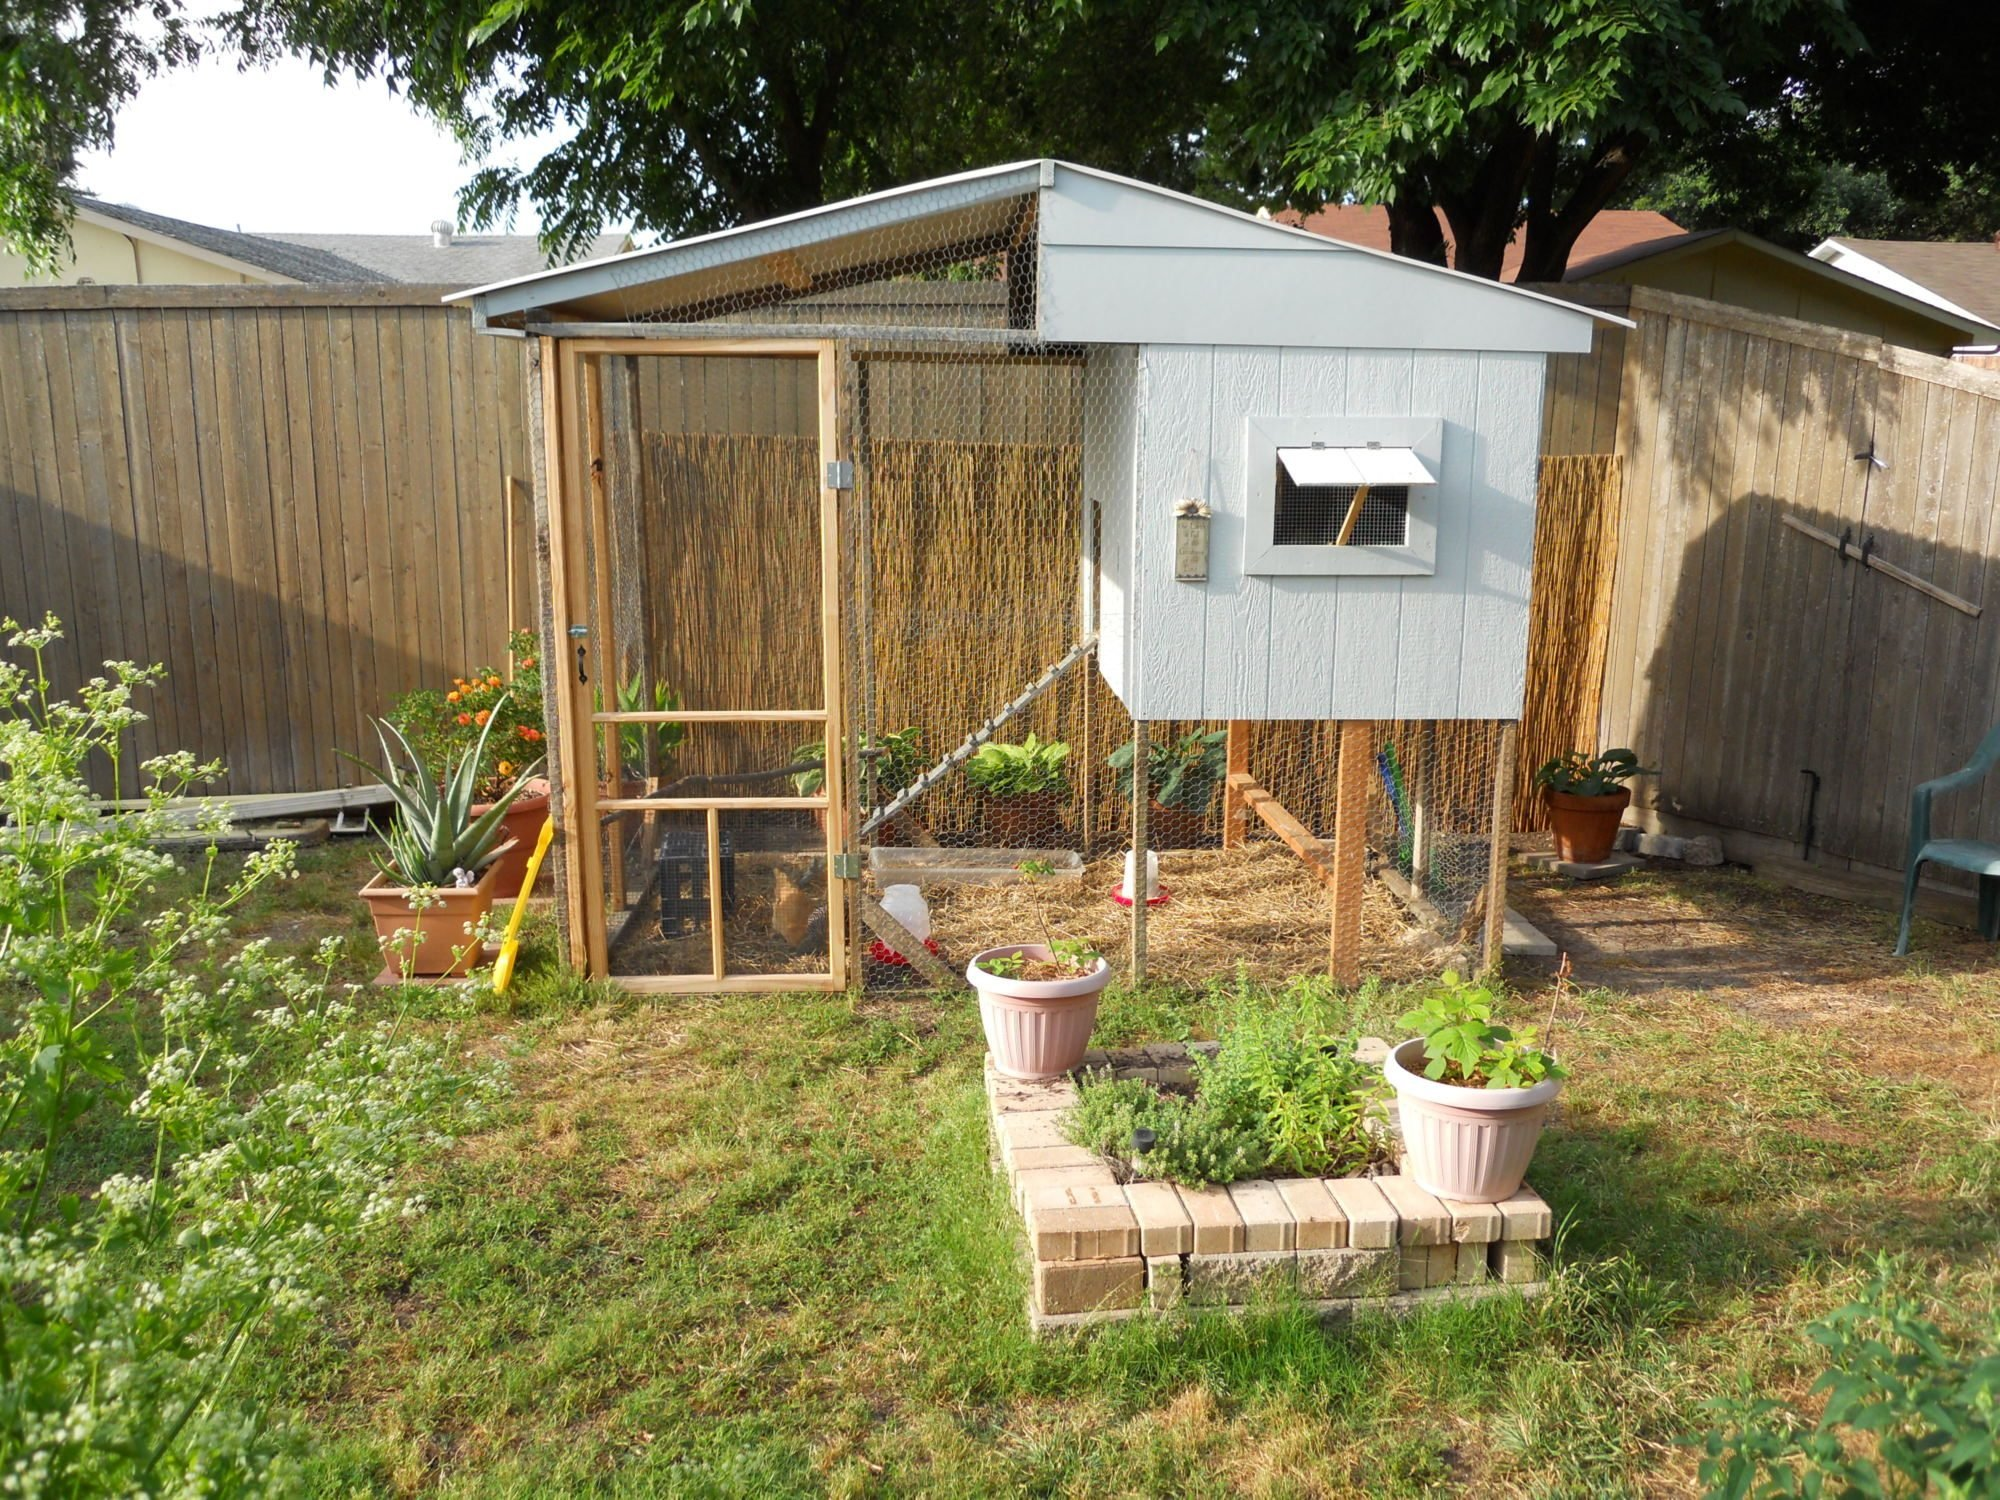 In search of pictures of suburban backyard coops! - Page 3